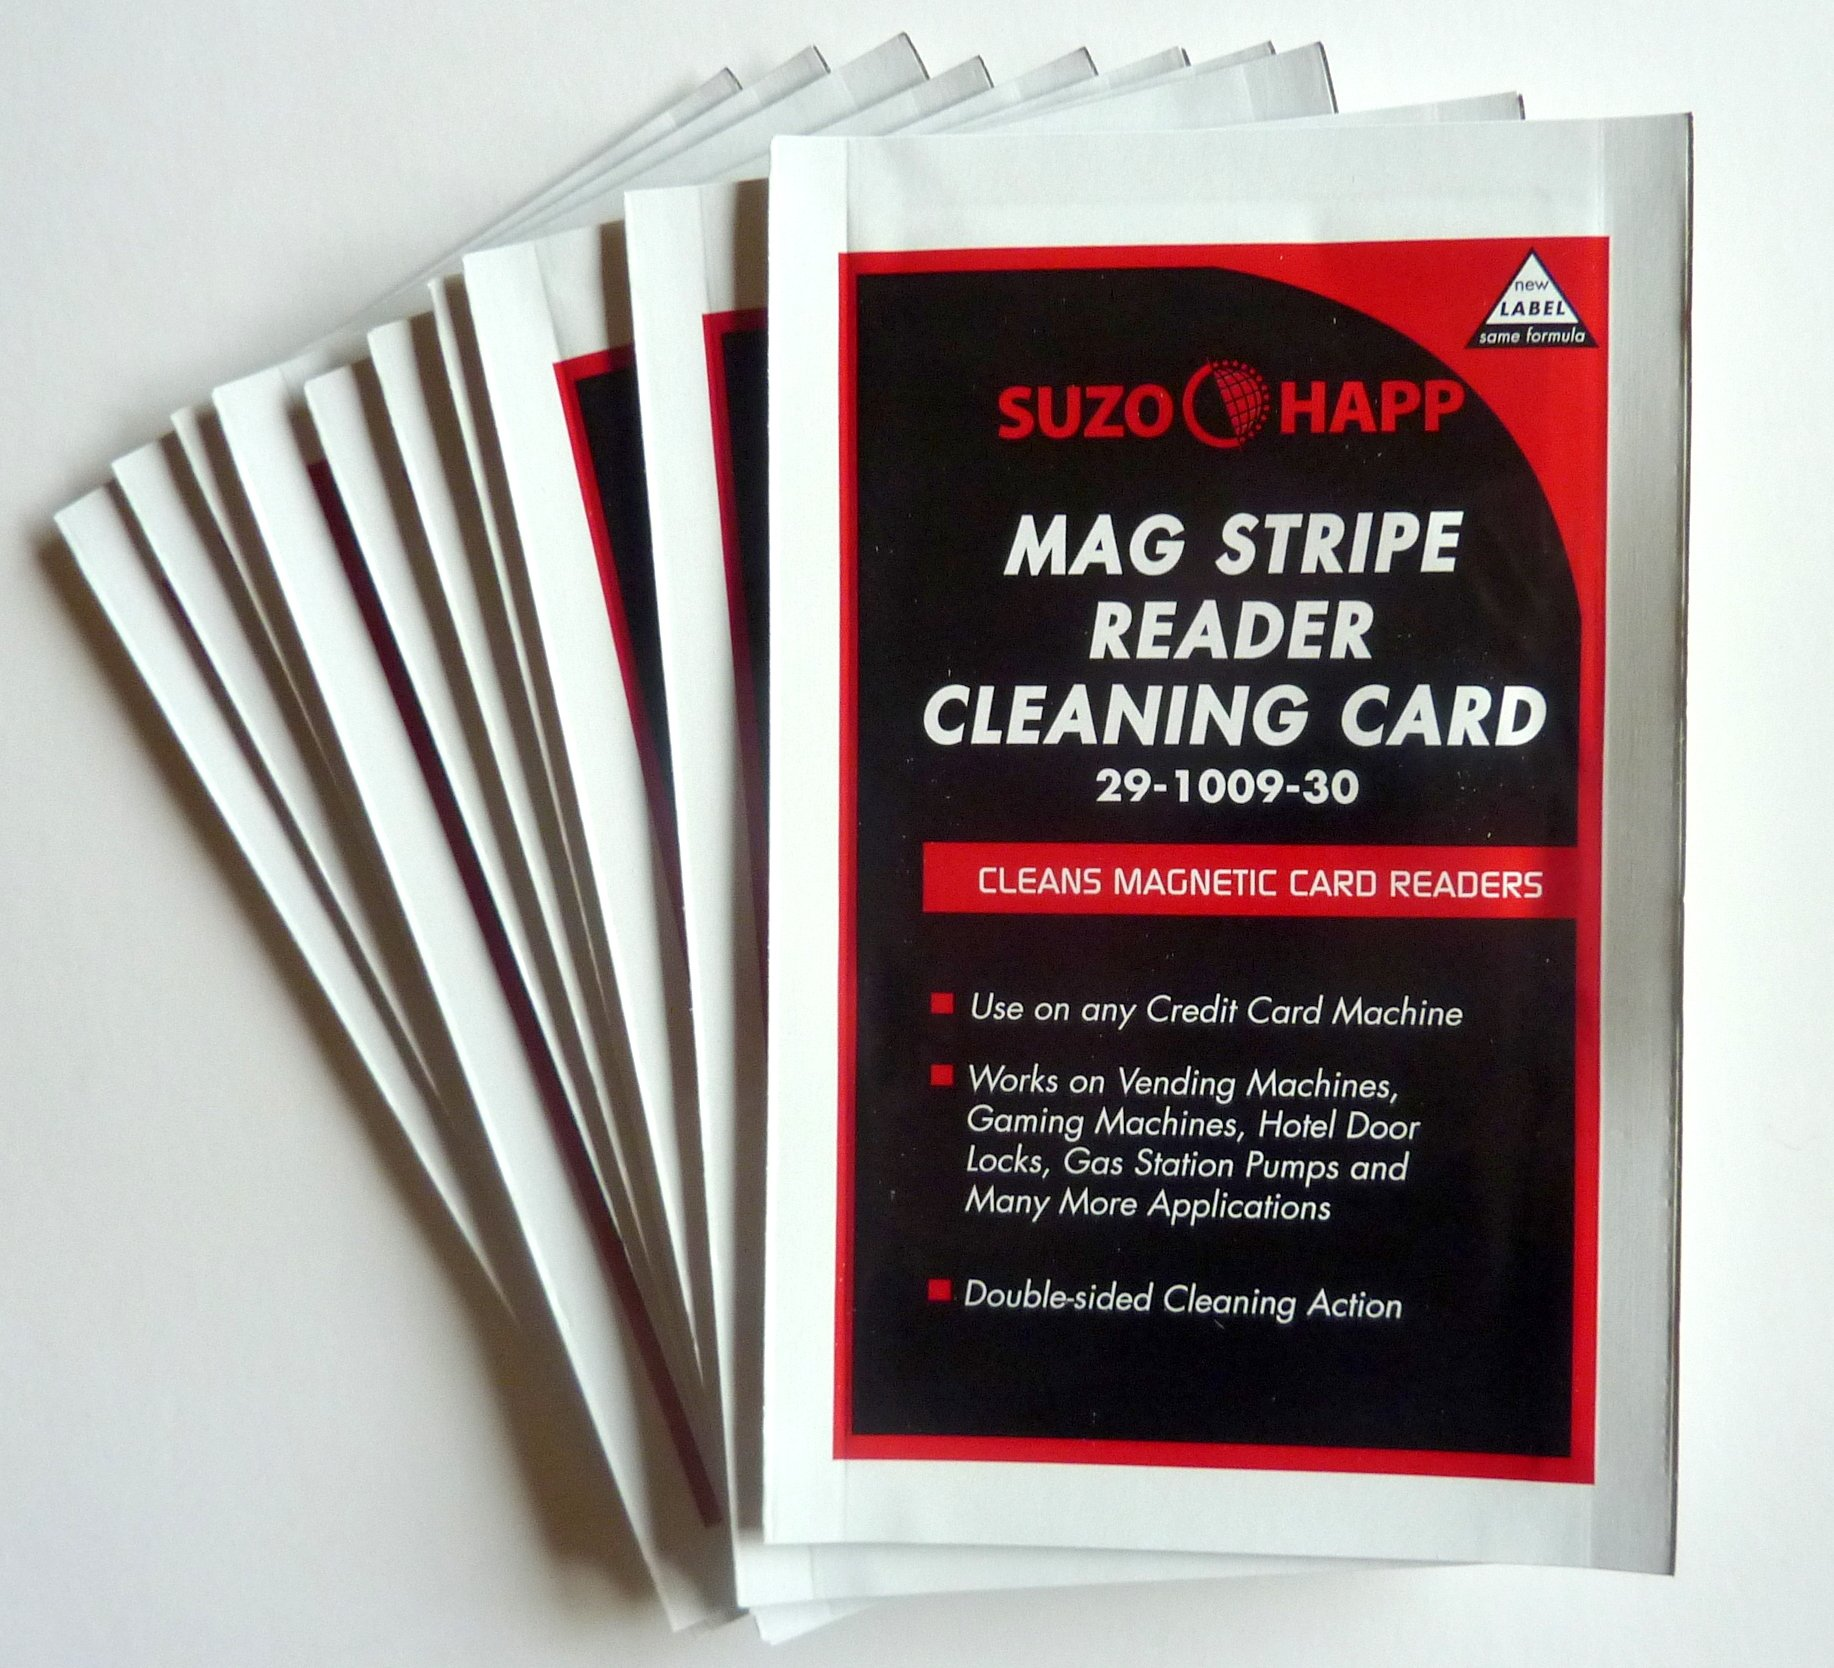 Cleaning Cards for Magnetic Stripe Credit Card Readers Lot/25 by Suzo Happ